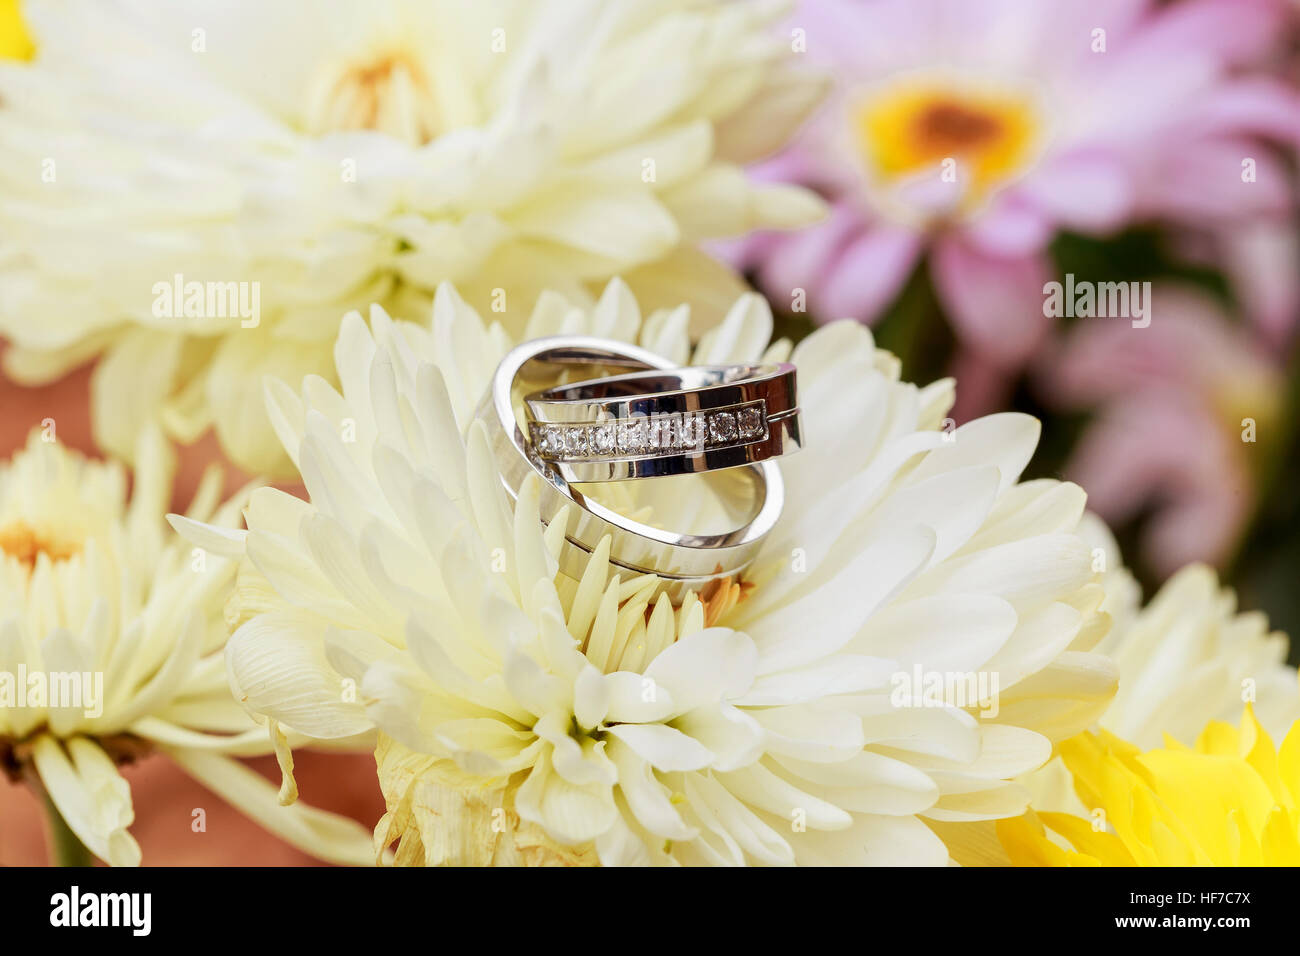 wedding ring with petals ring Valentines day love flowers - Stock Image